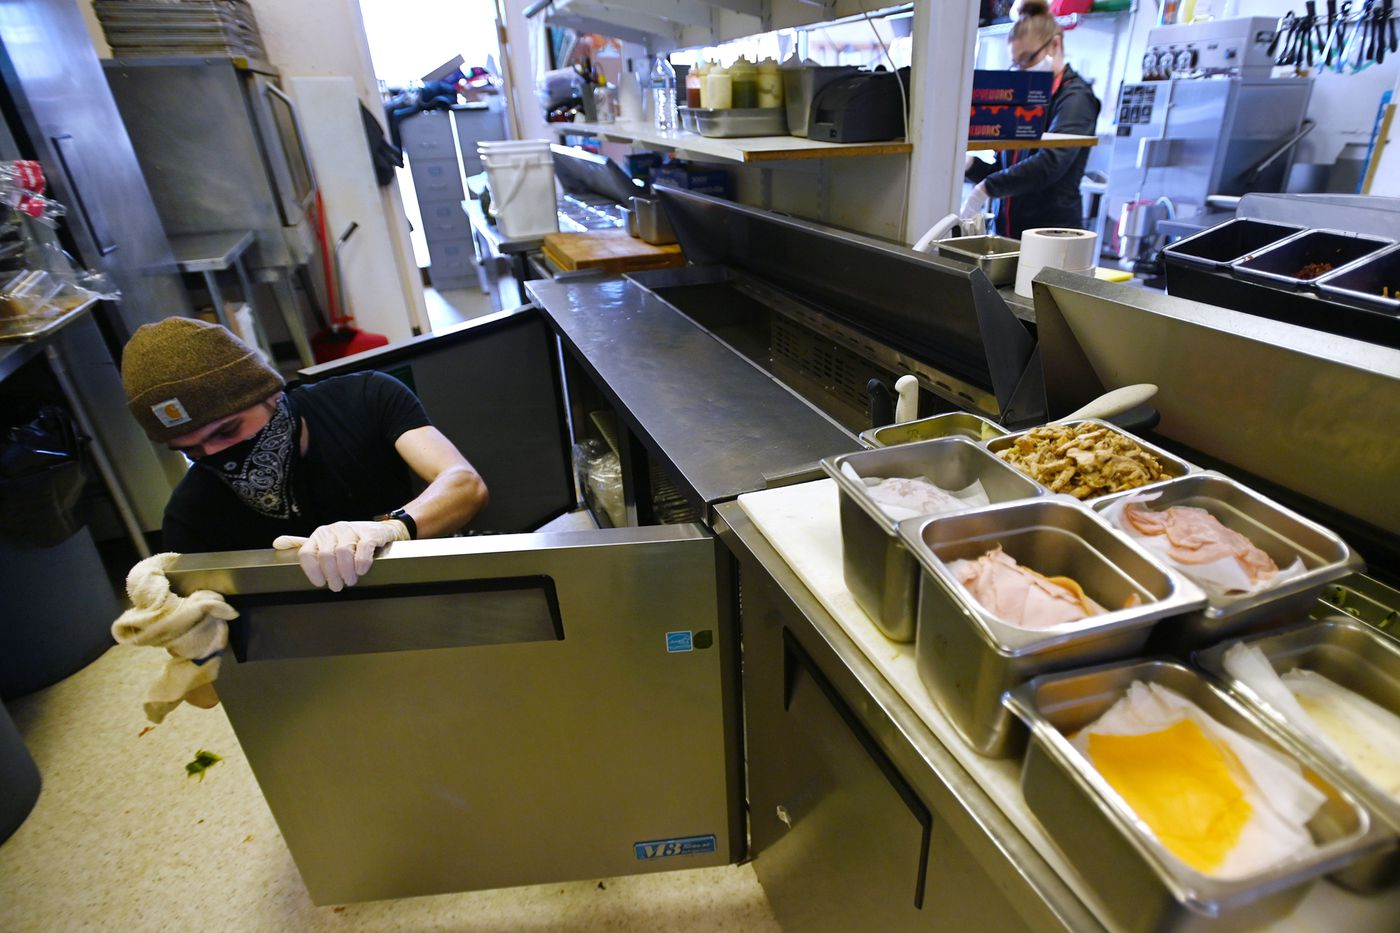 Caleb Davidson sanitizes refrigerator doors before storing lunch meat at Sis's Café and Catering on Old Seward Highway on Monday, April 6, 2020. (Bill Roth / ADN)